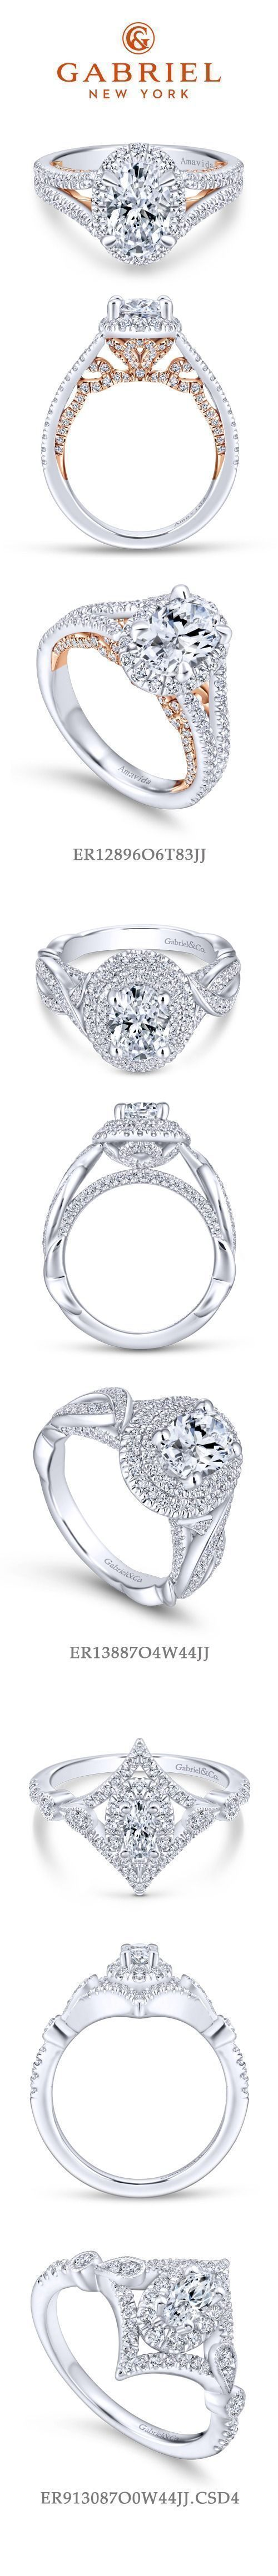 Gabriel NY - Preferred Fine Jewelry and Bridal Brand. Top 3 Oval Engagement Rings. 1) 18k White Gold Rose Gold Oval Halo Engagement Ring 2) 14k White Gold Double Halo Engagement Ring 3) Vintage 14k White Gold Halo Wedding Ring #fineweddingrings